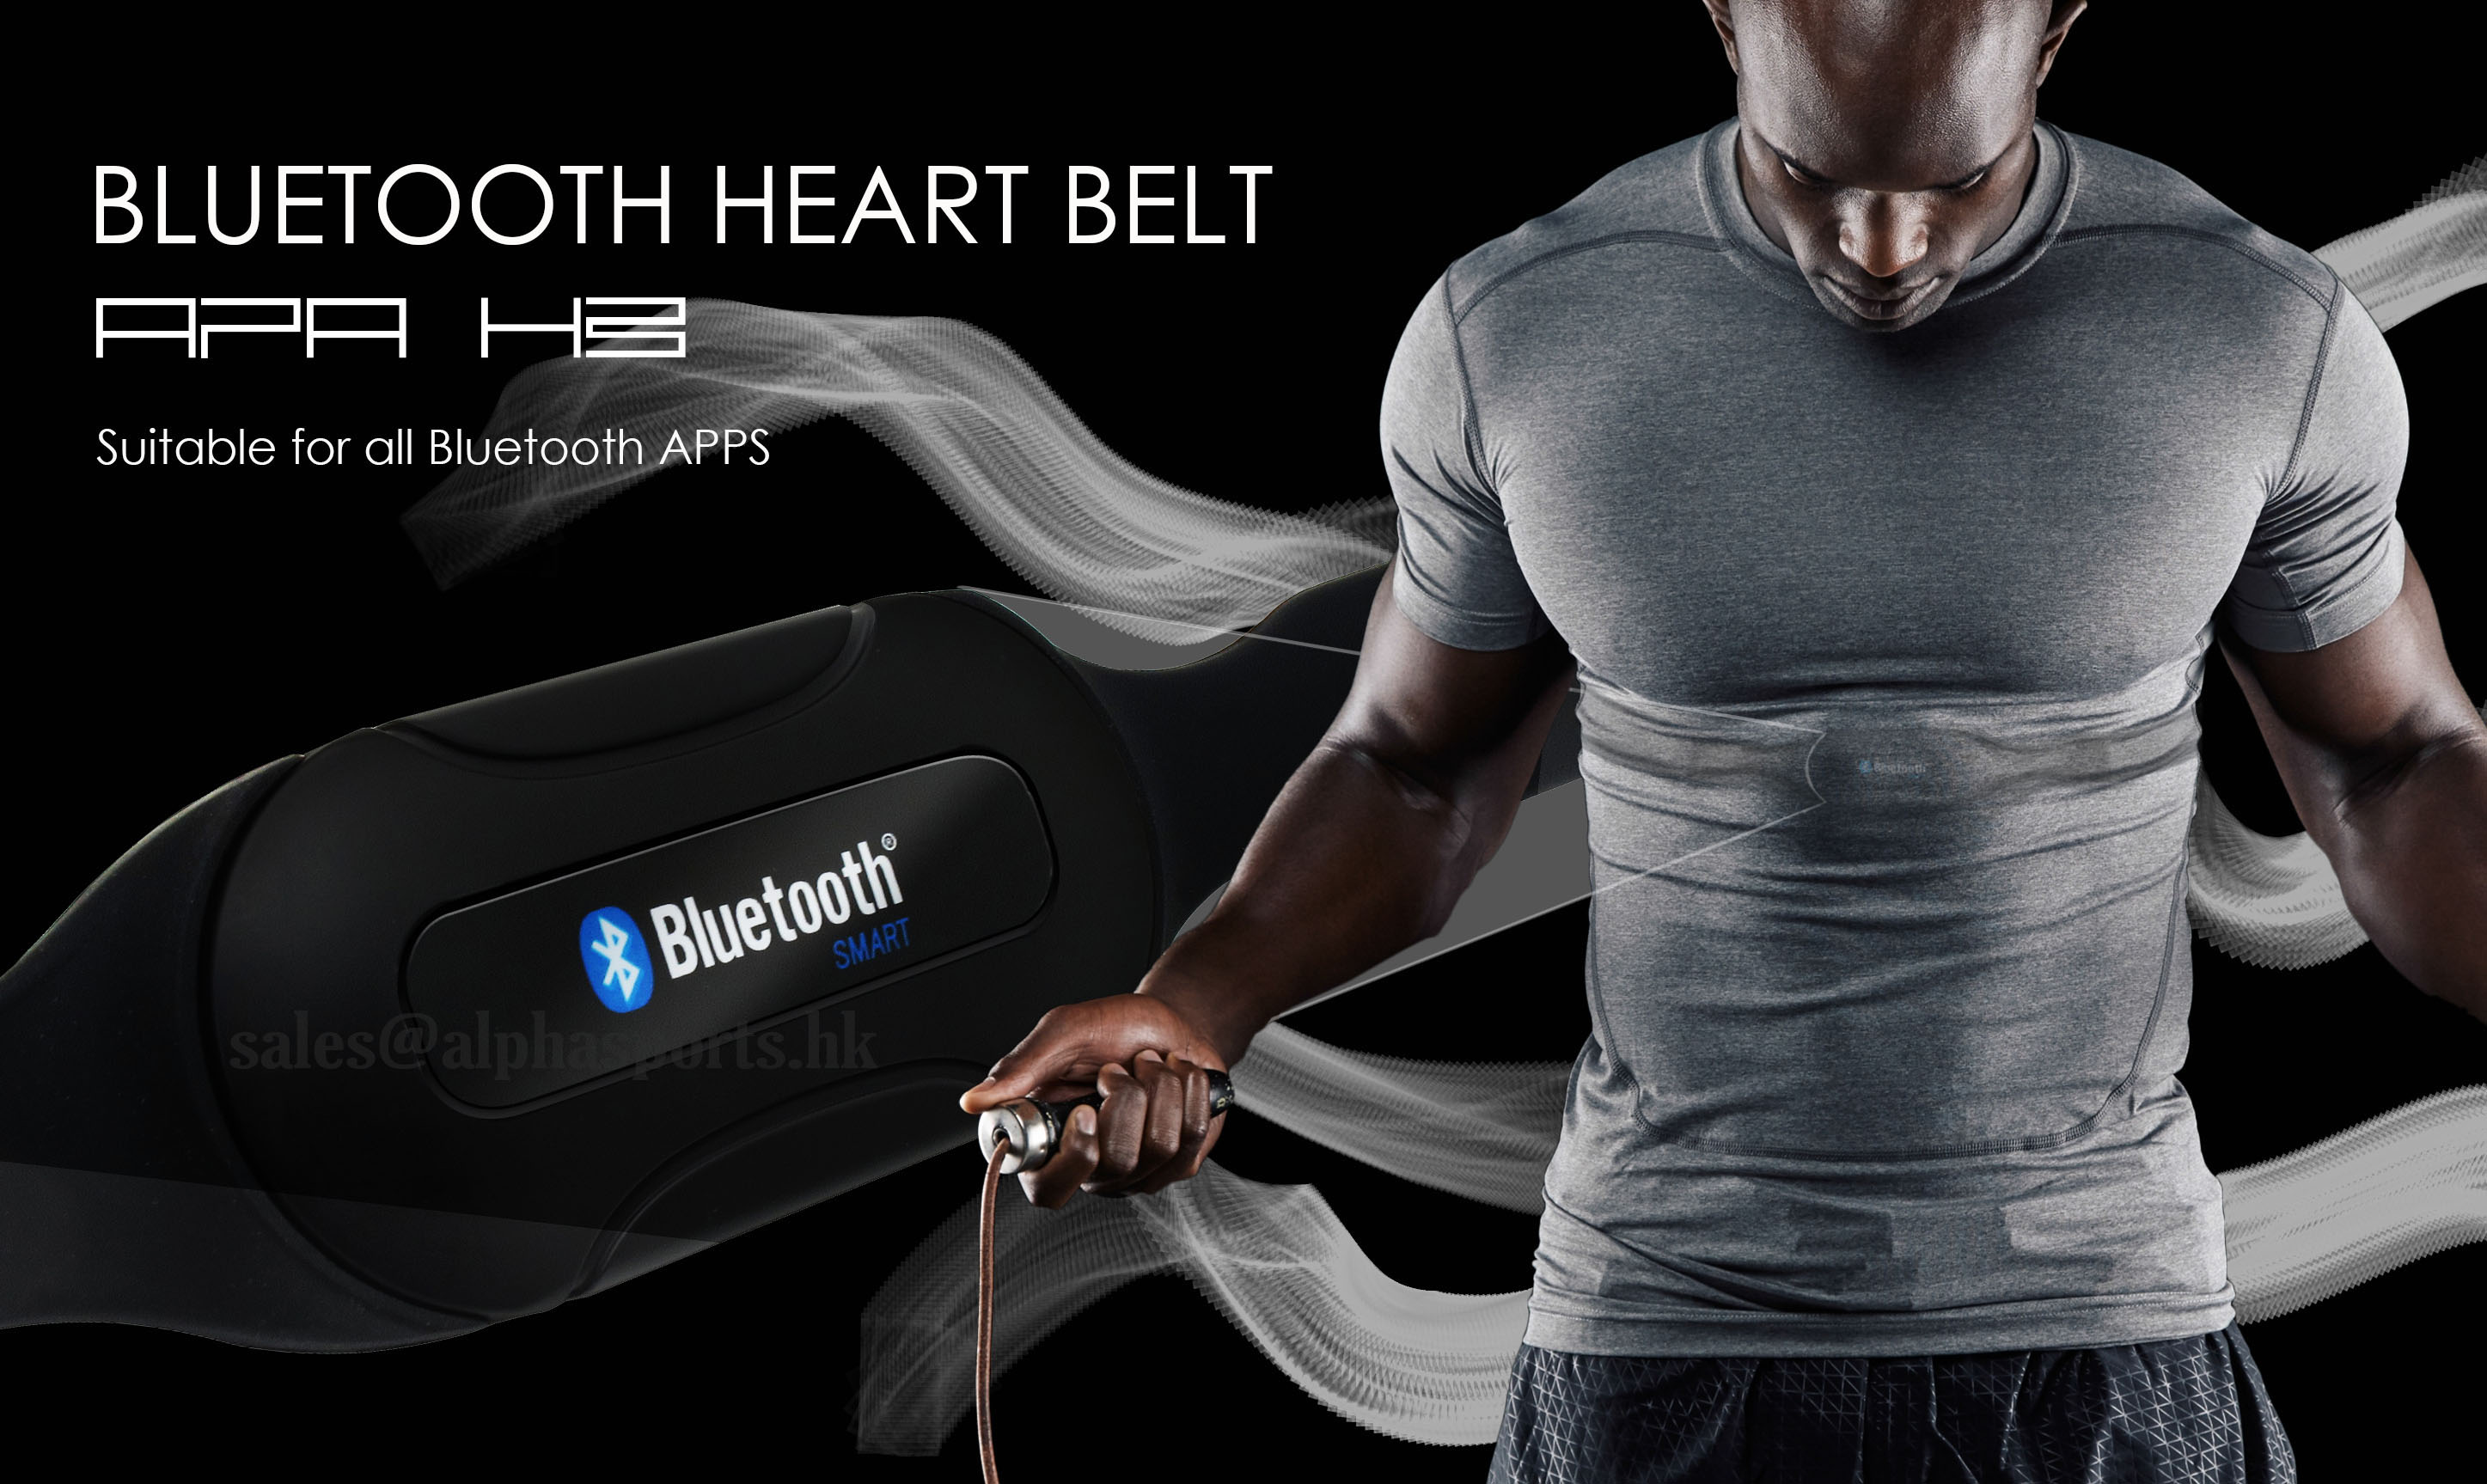 APA BLUETOOTH HEART RATE BELT